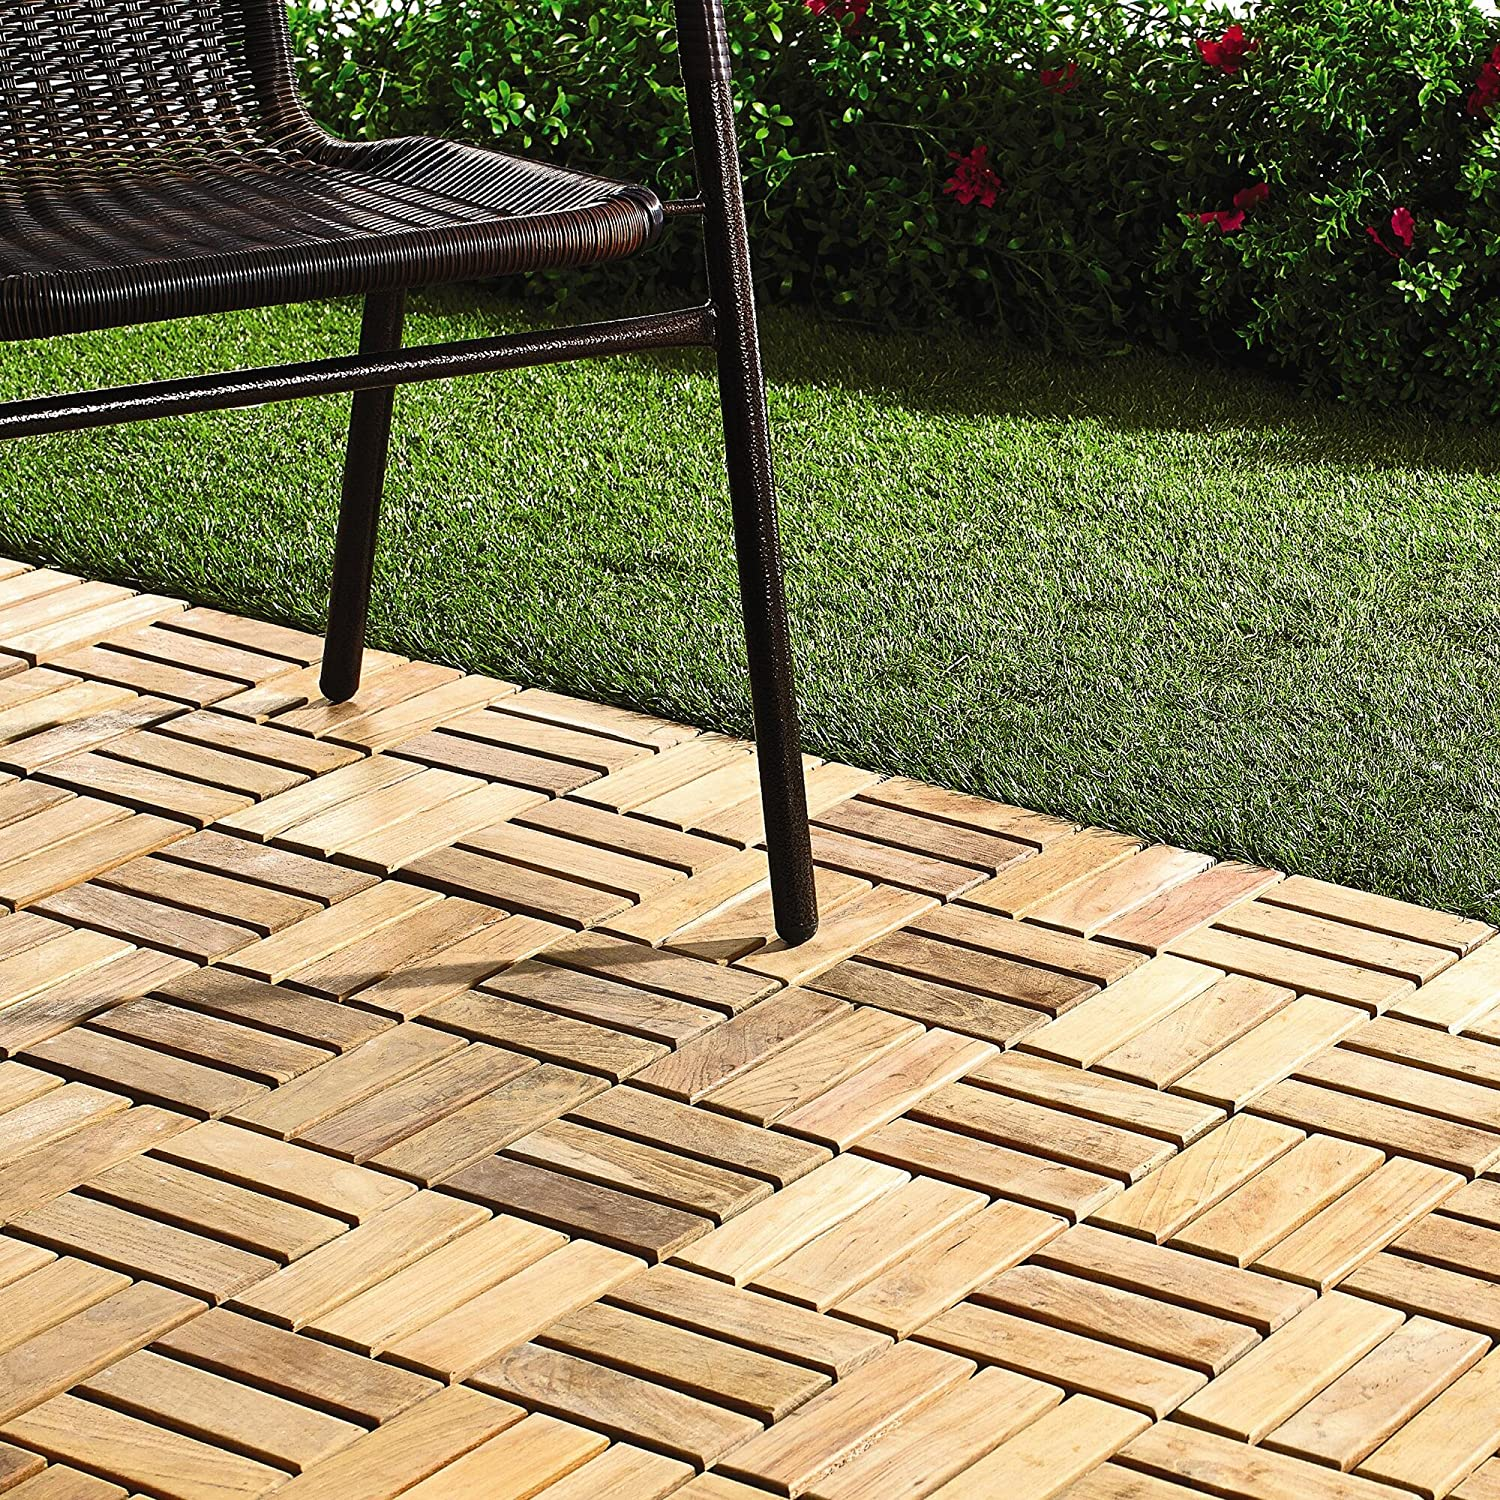 Amazon quick connect teak interlocking flooring tiles amazon quick connect teak interlocking flooring tiles windmill pattern natural finish 10 square feet wood floor coverings garden outdoor dailygadgetfo Gallery